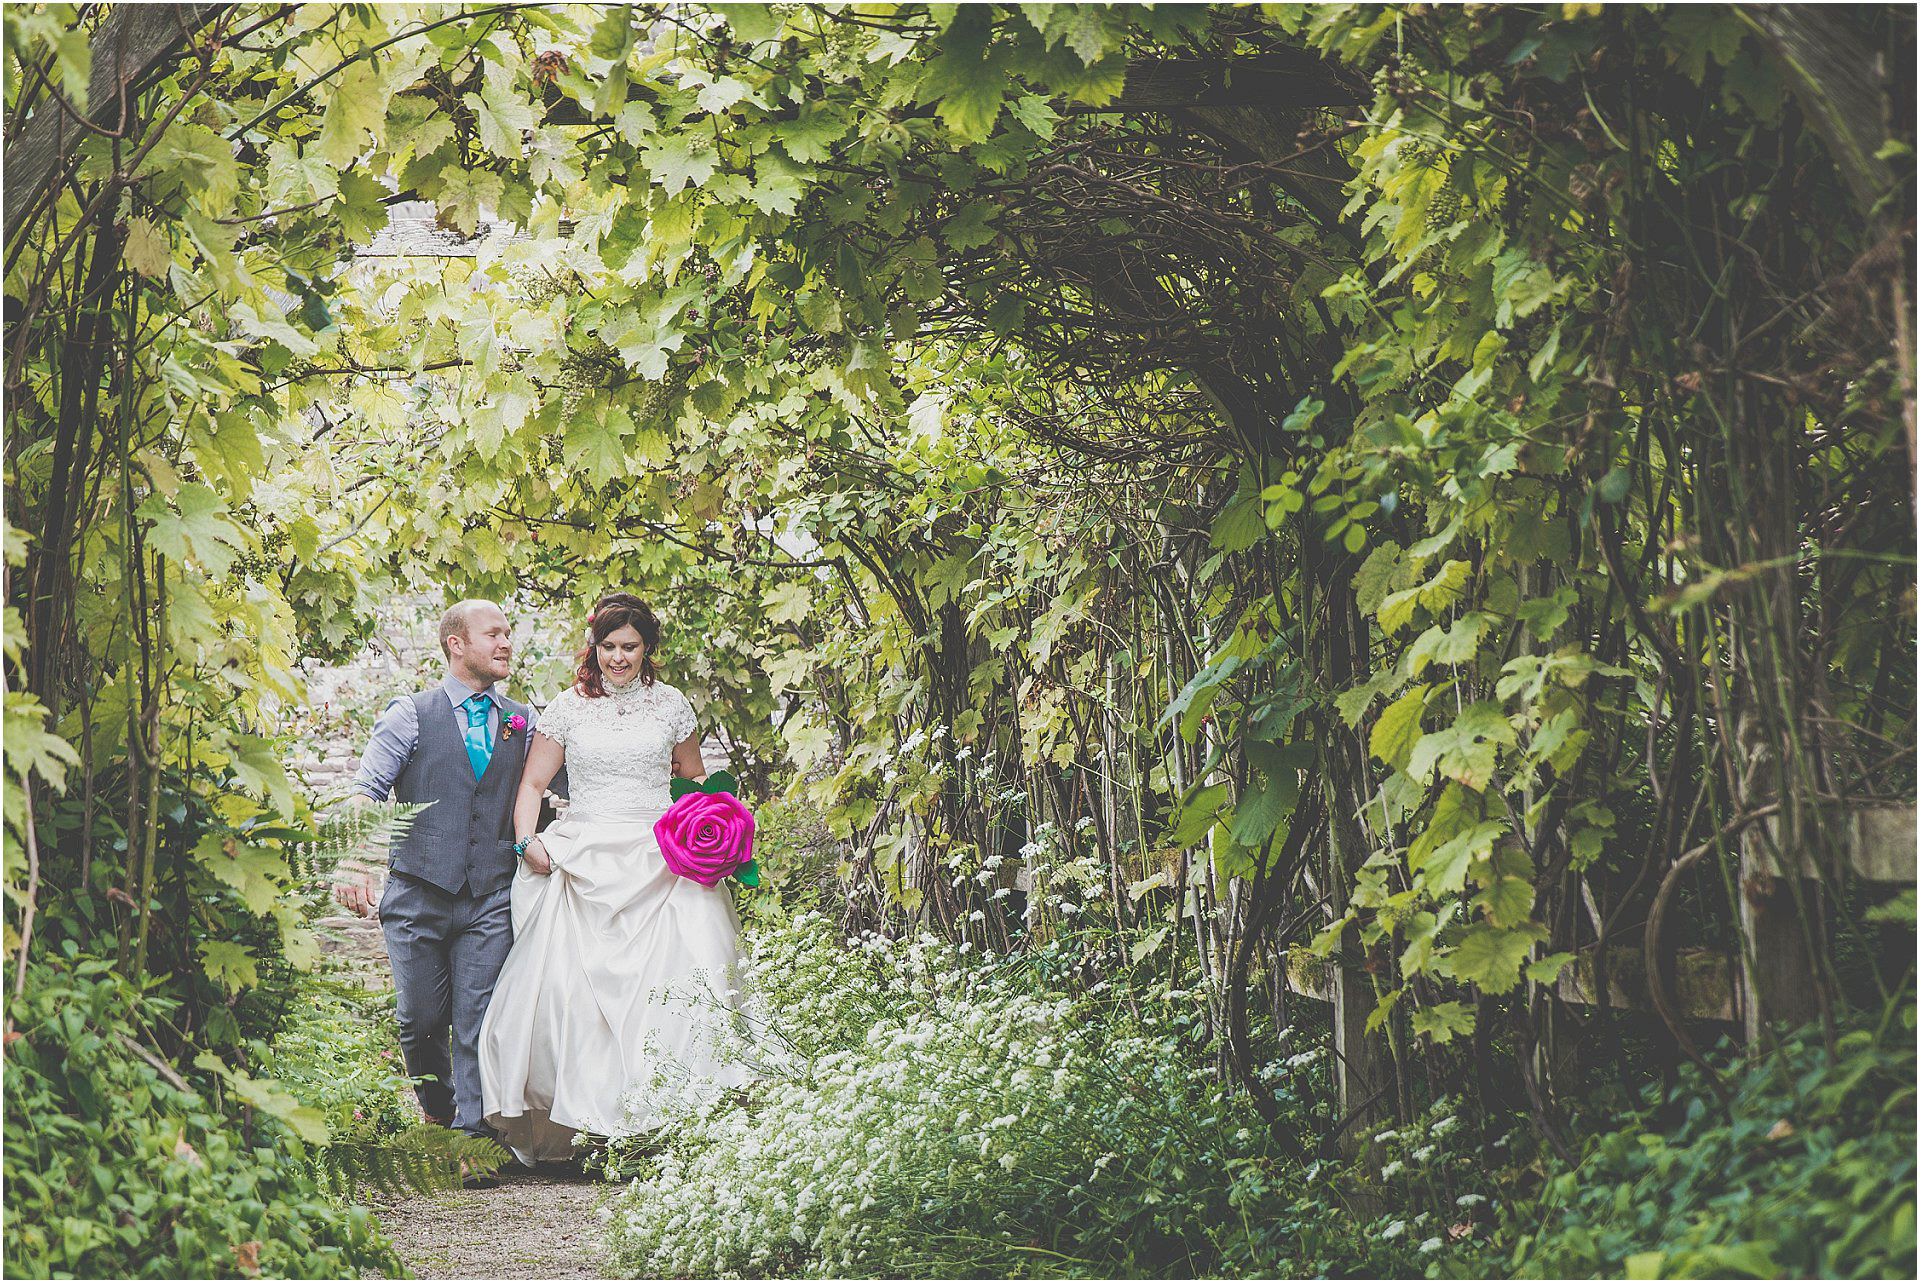 Glasbury on Wye Wedding Photographer